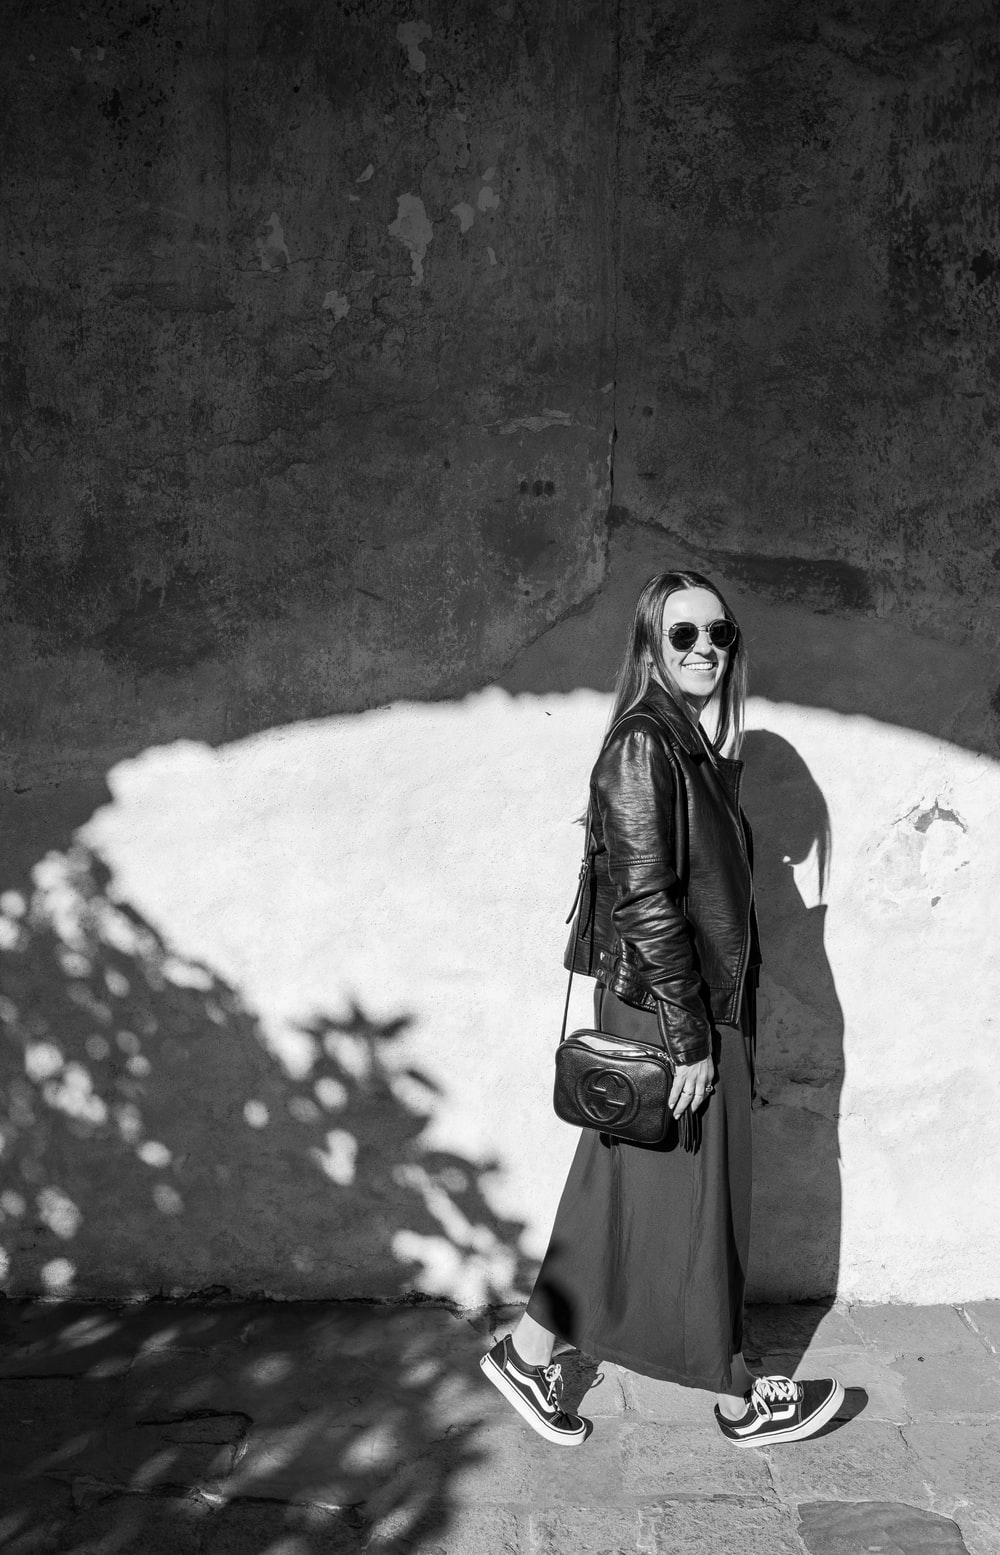 grayscale photography of woman wearing leather zip-up jacket and sunglasses walking on pathway smiling